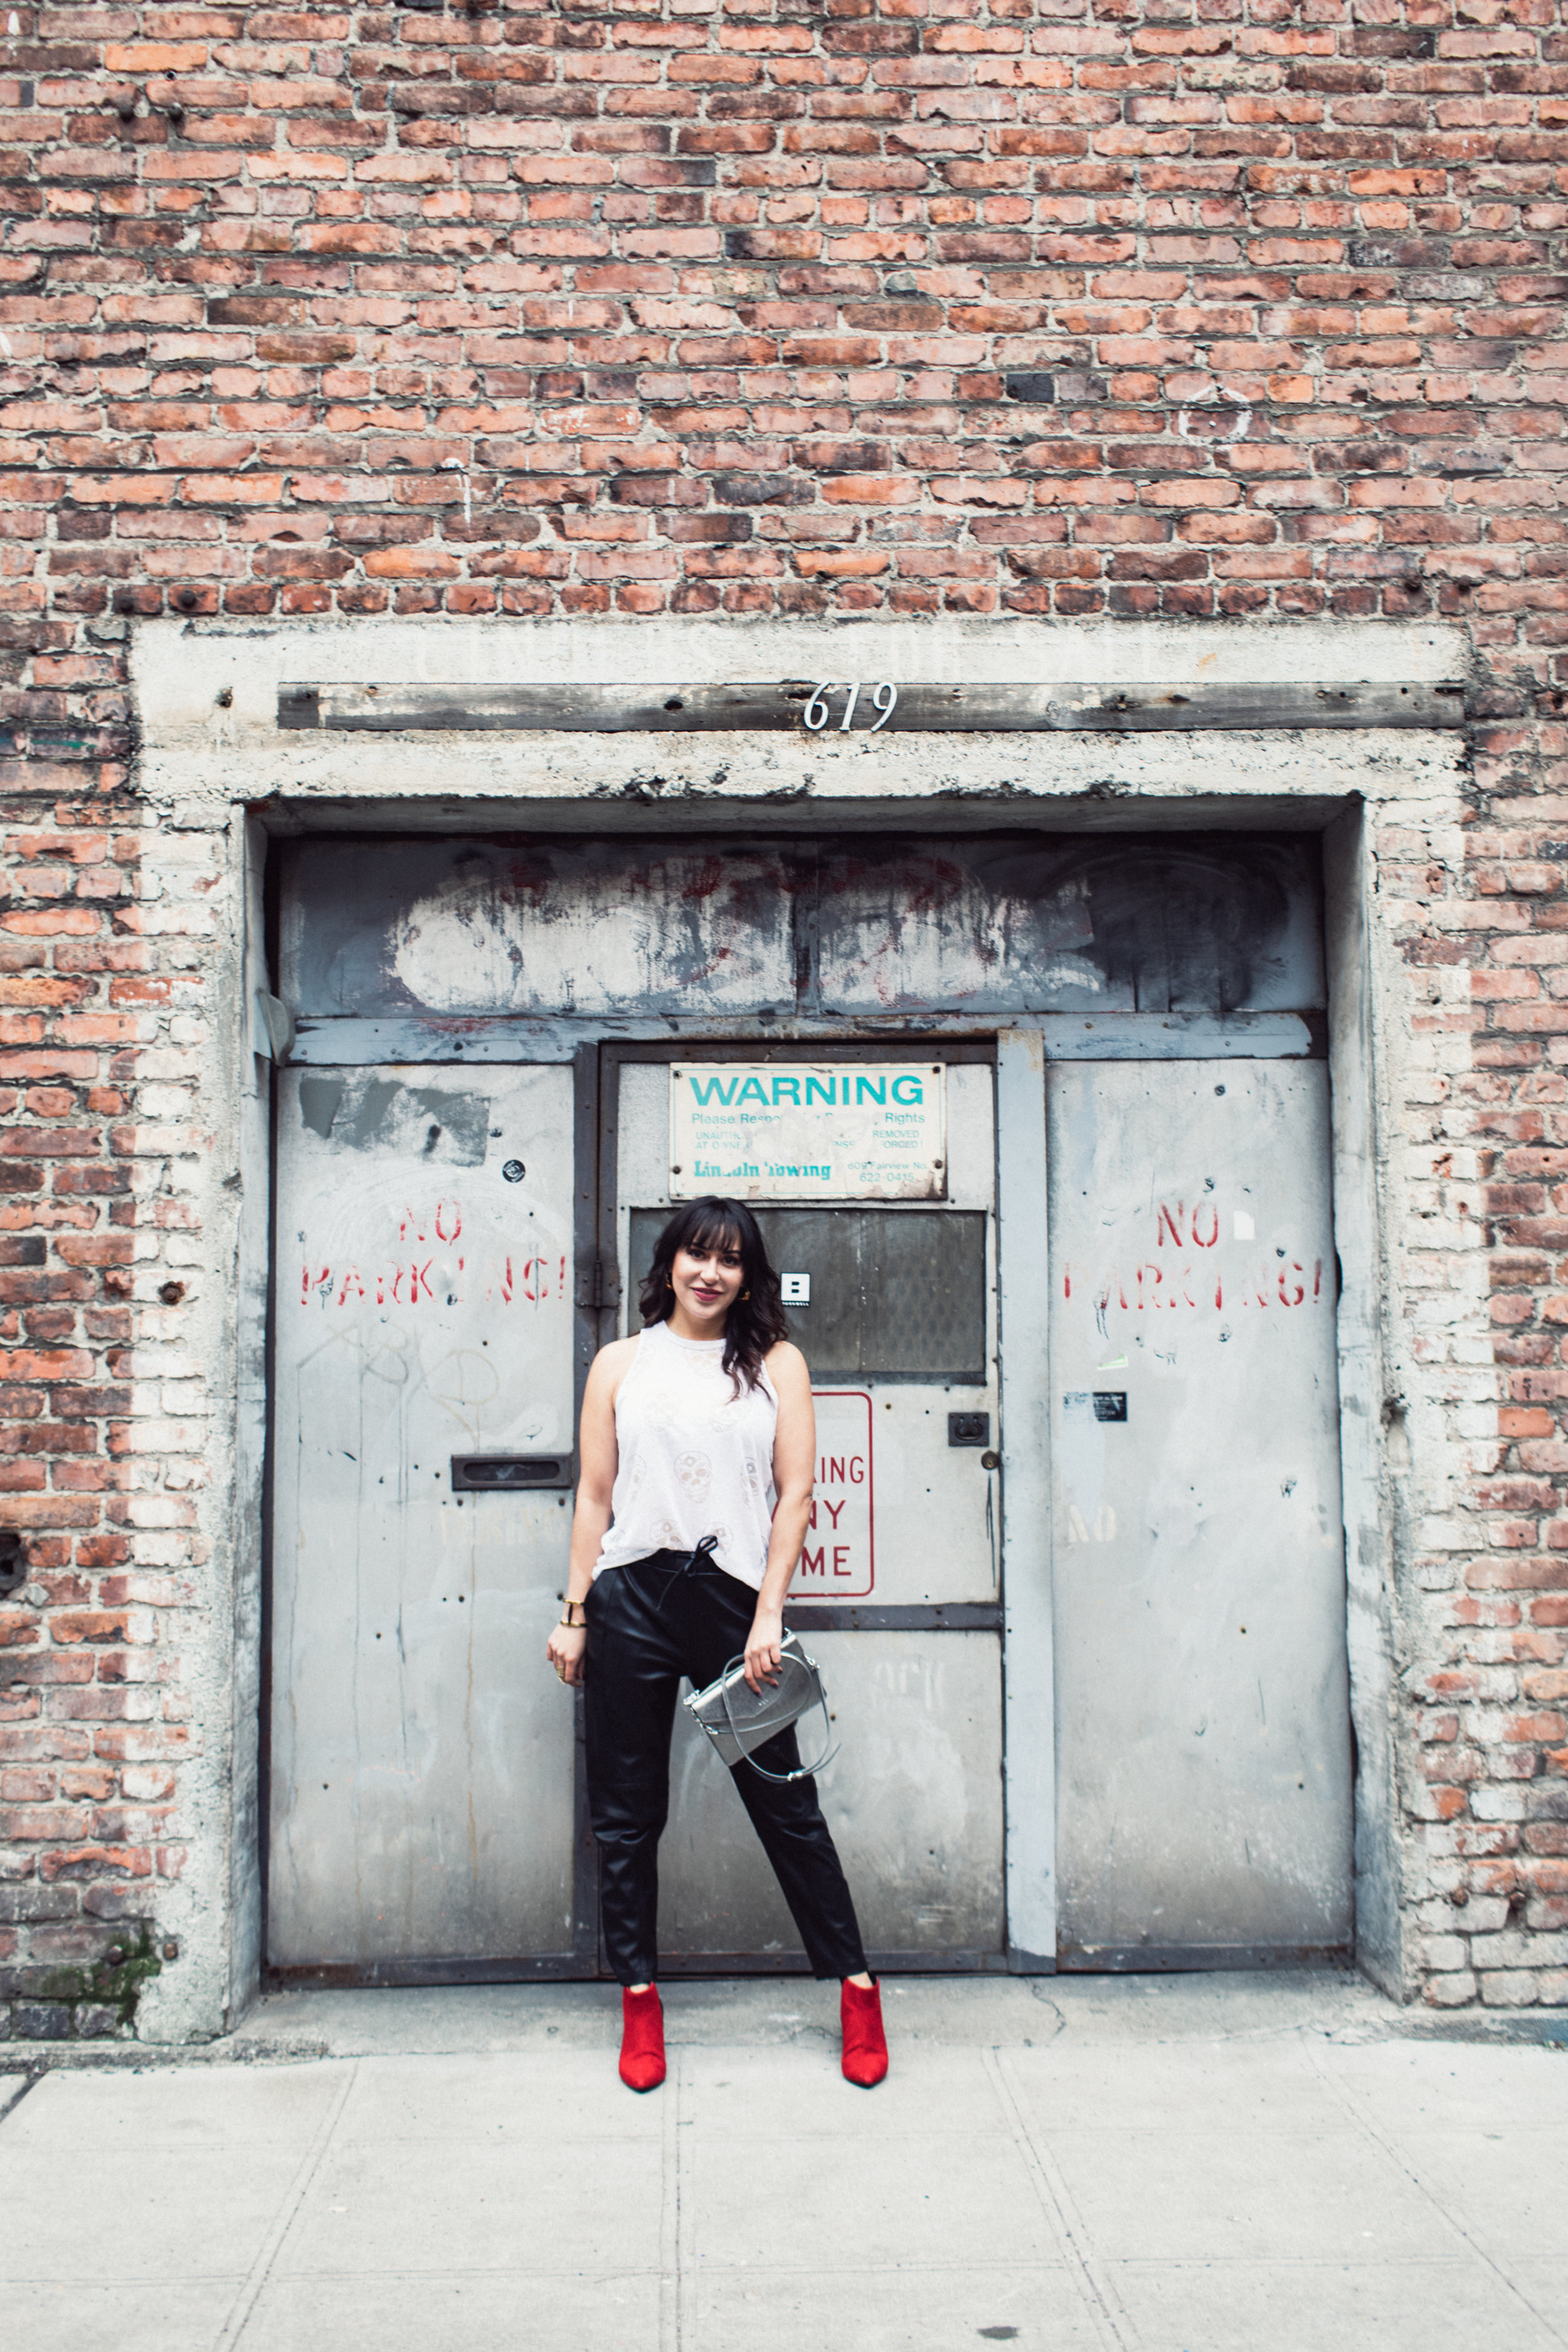 Real Poplin Style Client, Ashley. Poplin clients always wear their own pieces in the photo shoots. We work with what she already has in her closet, then add pieces that will complete her authentic personal style. See Ashley's story on the client page. Photo by  Chamonix Browne . Hair and makeup by  Kat St. John.